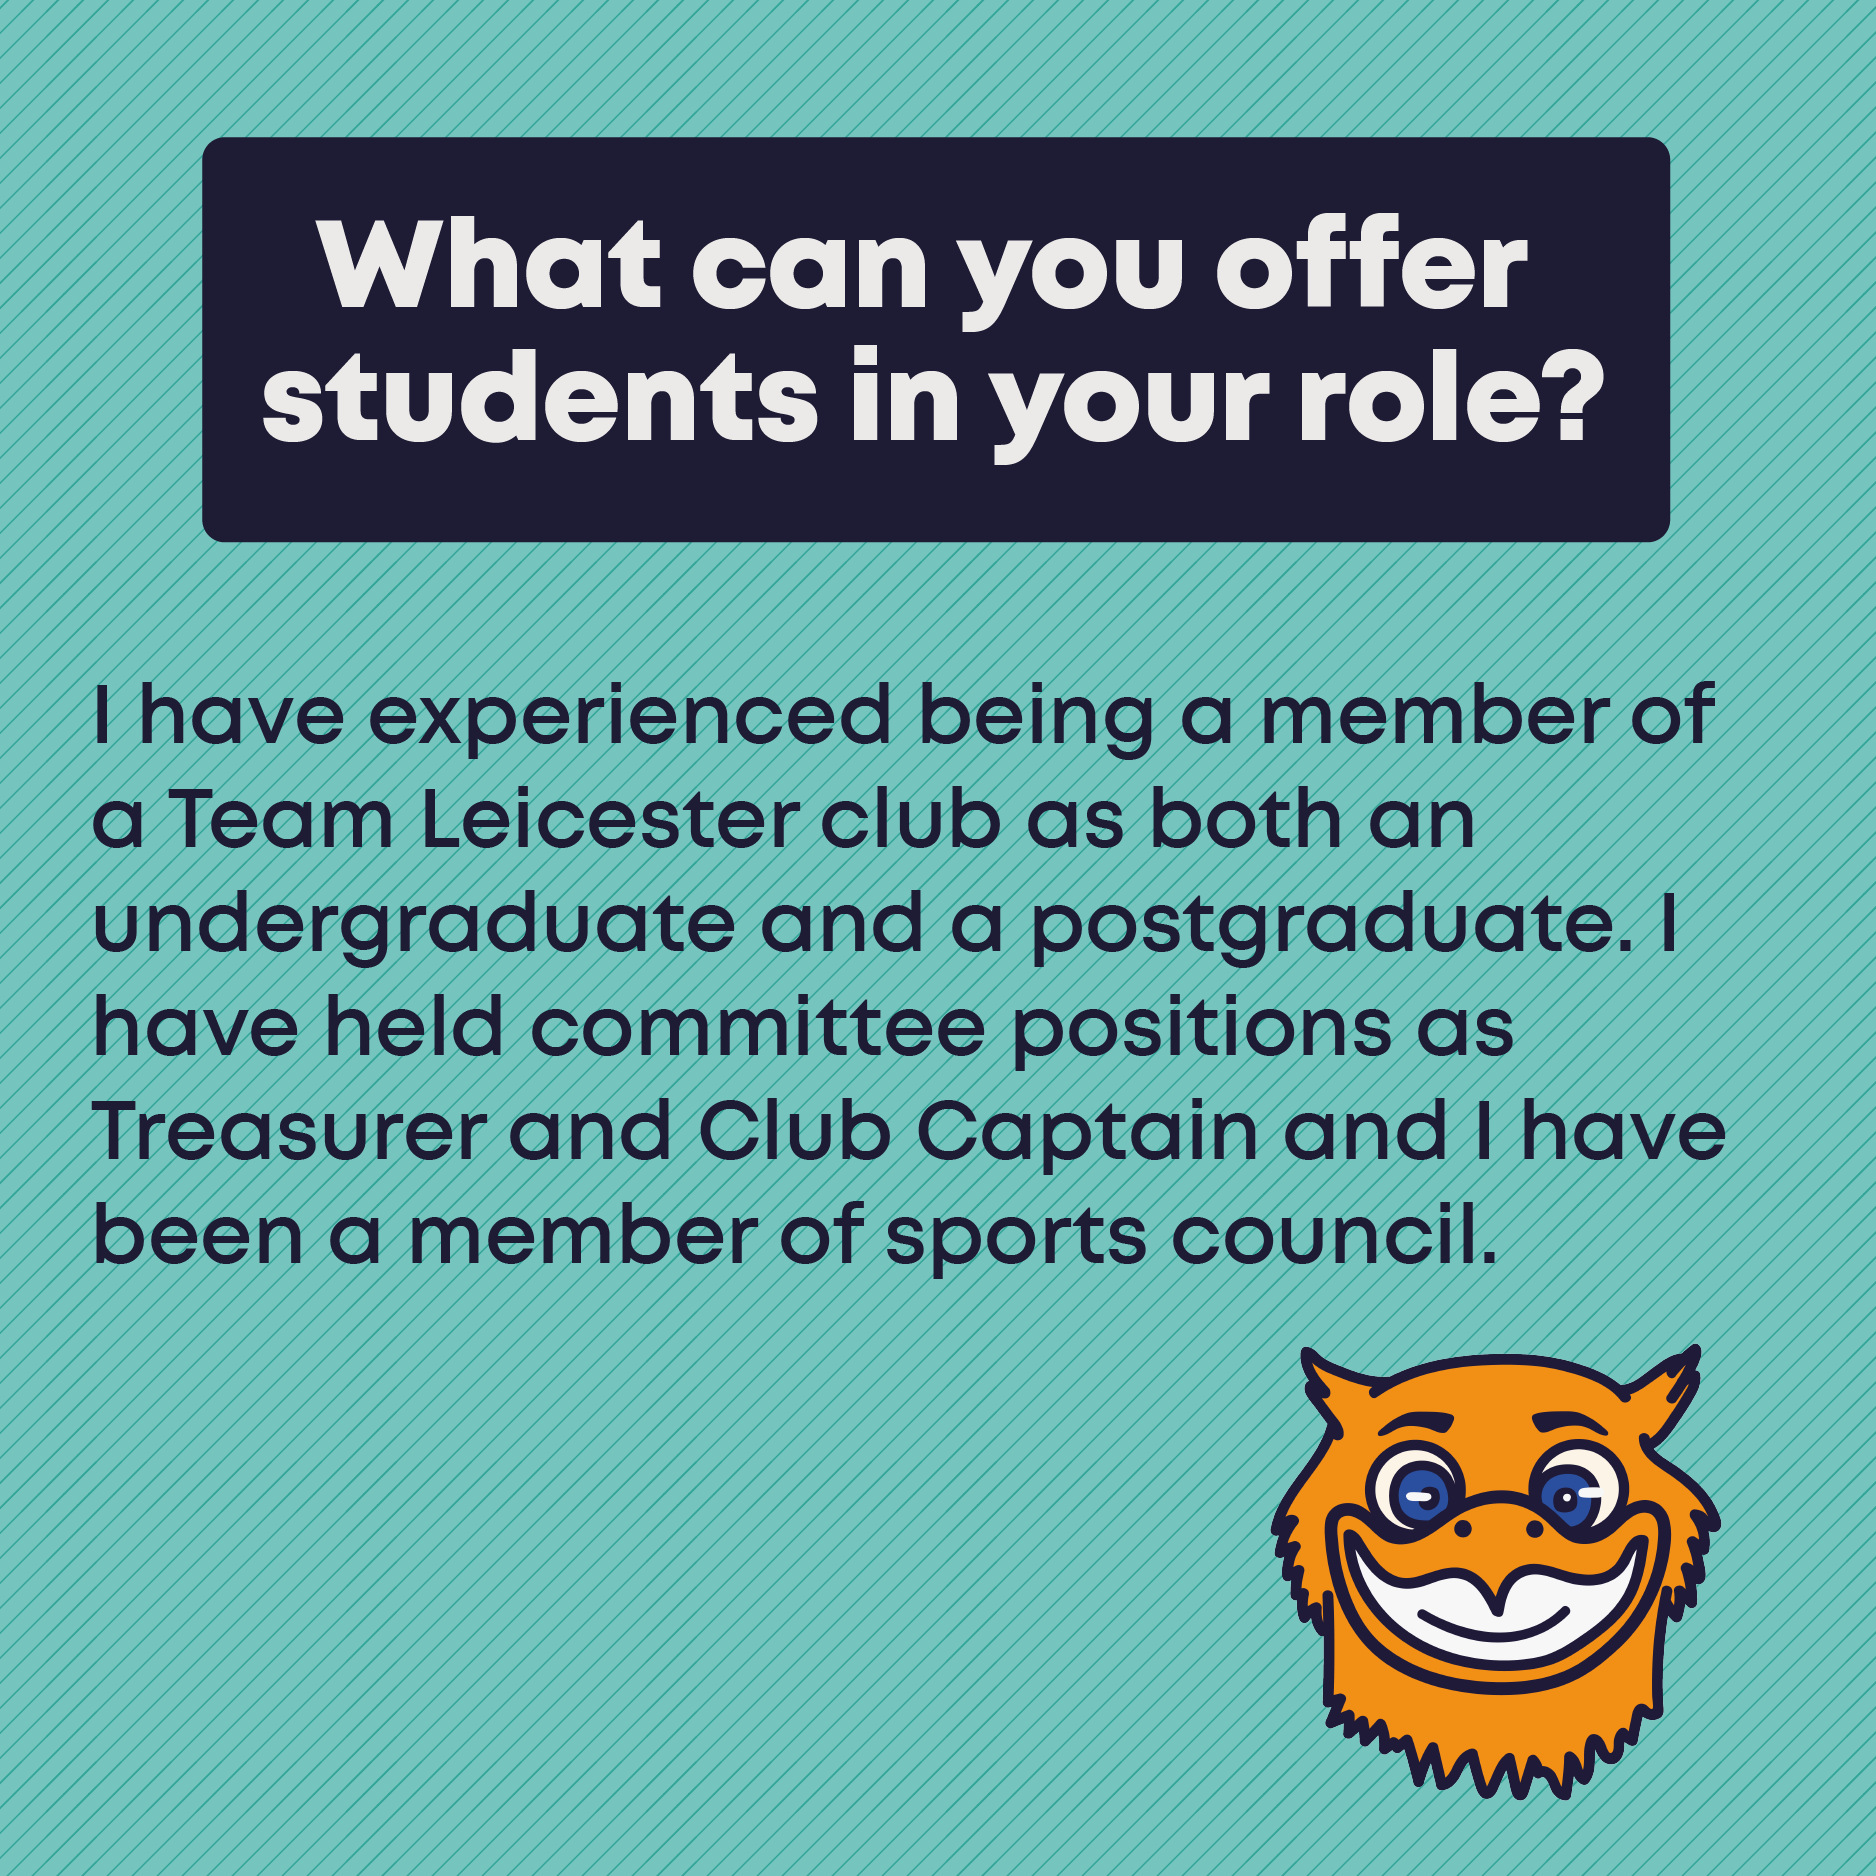 What can you offer students in your role? I have experienced being a member of a Team Leicester club as both an undergraduate and a postgraduate. I have held committee positions as Treasurer and Club Captain and I have been a member of sports council.